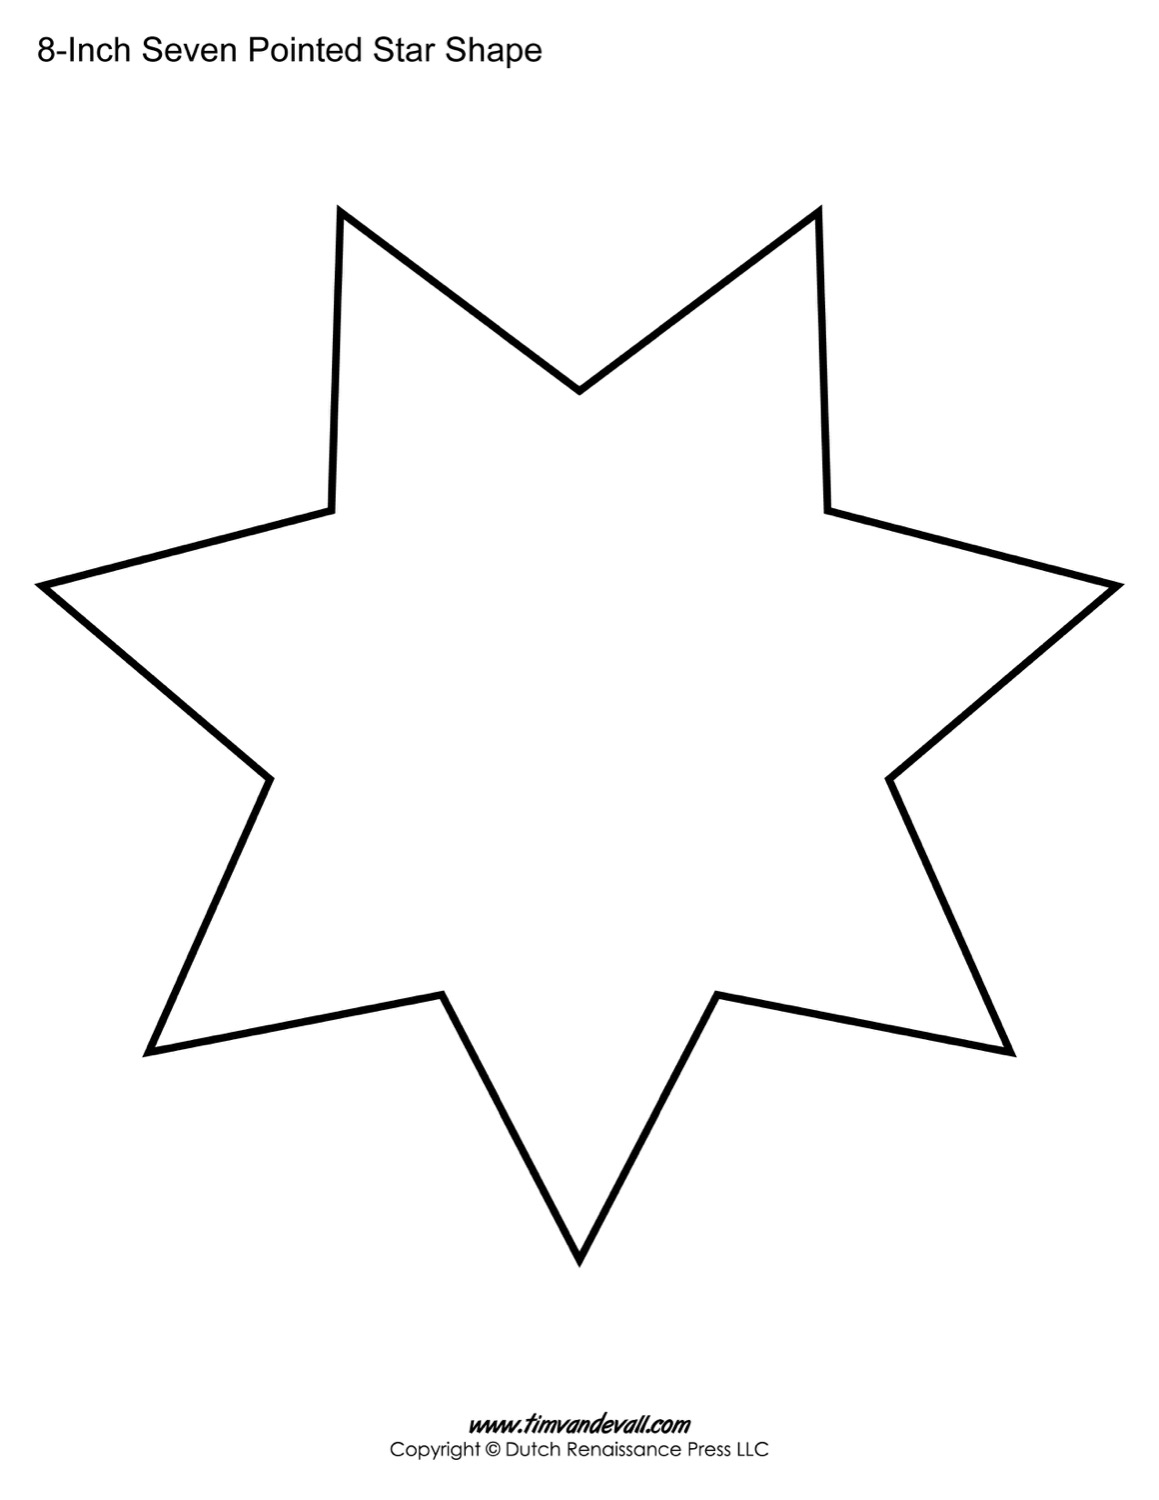 how to draw a seven pointed star